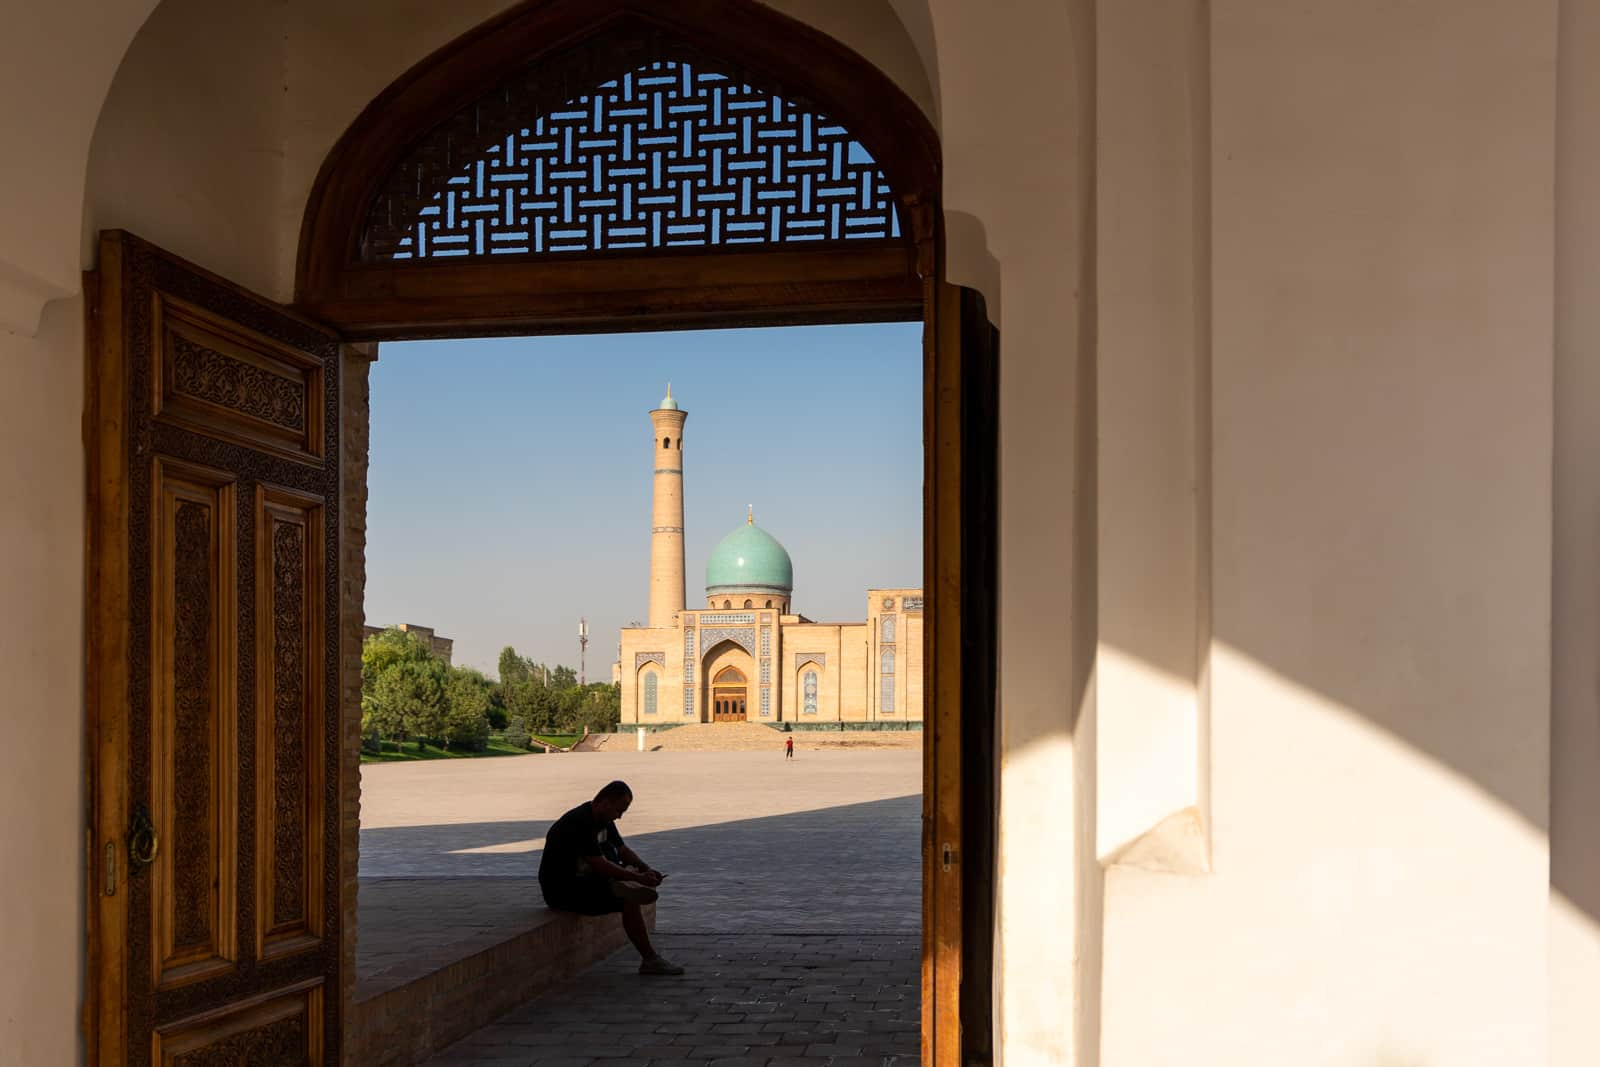 A man sitting in shadow in the Khast Imam complex in